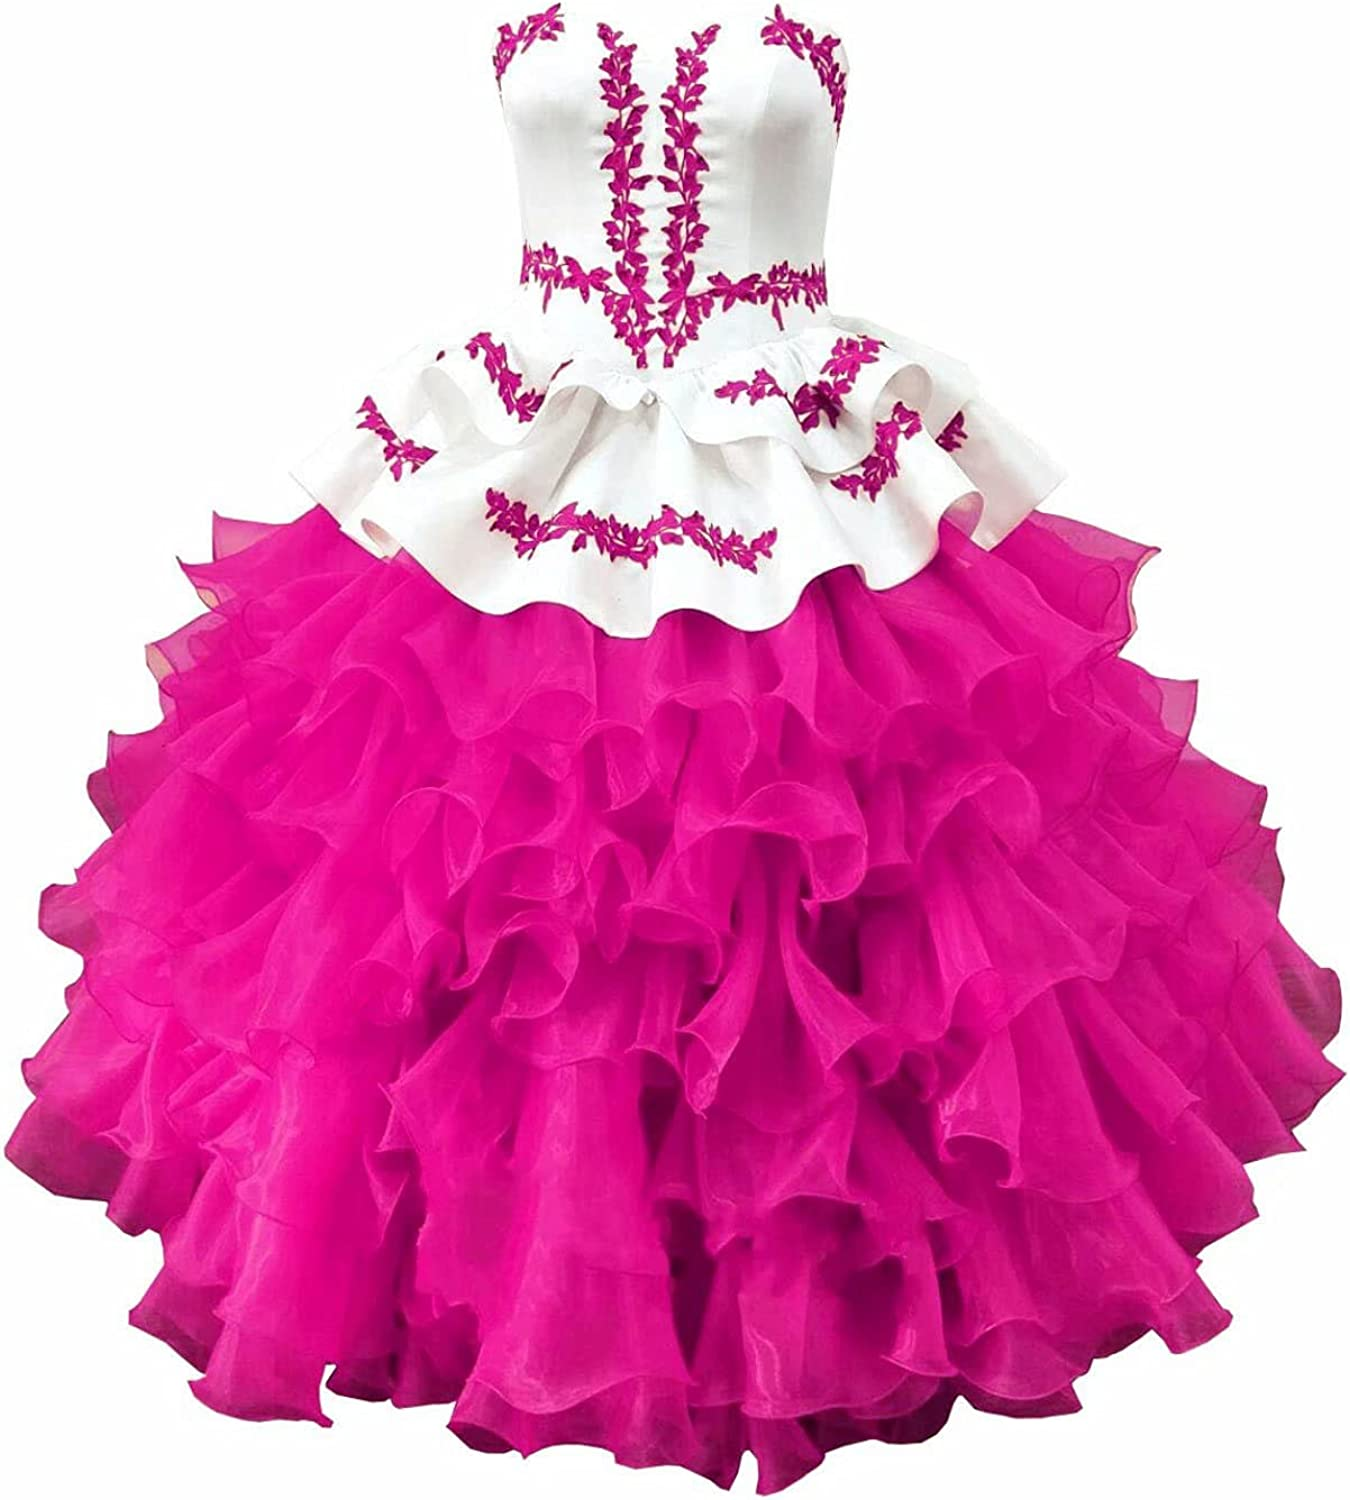 Sweetheart Ball Gown Ruffles Satin Red Embroidery Pageant Prom Formal Dresses for Little Girls Junior Corset